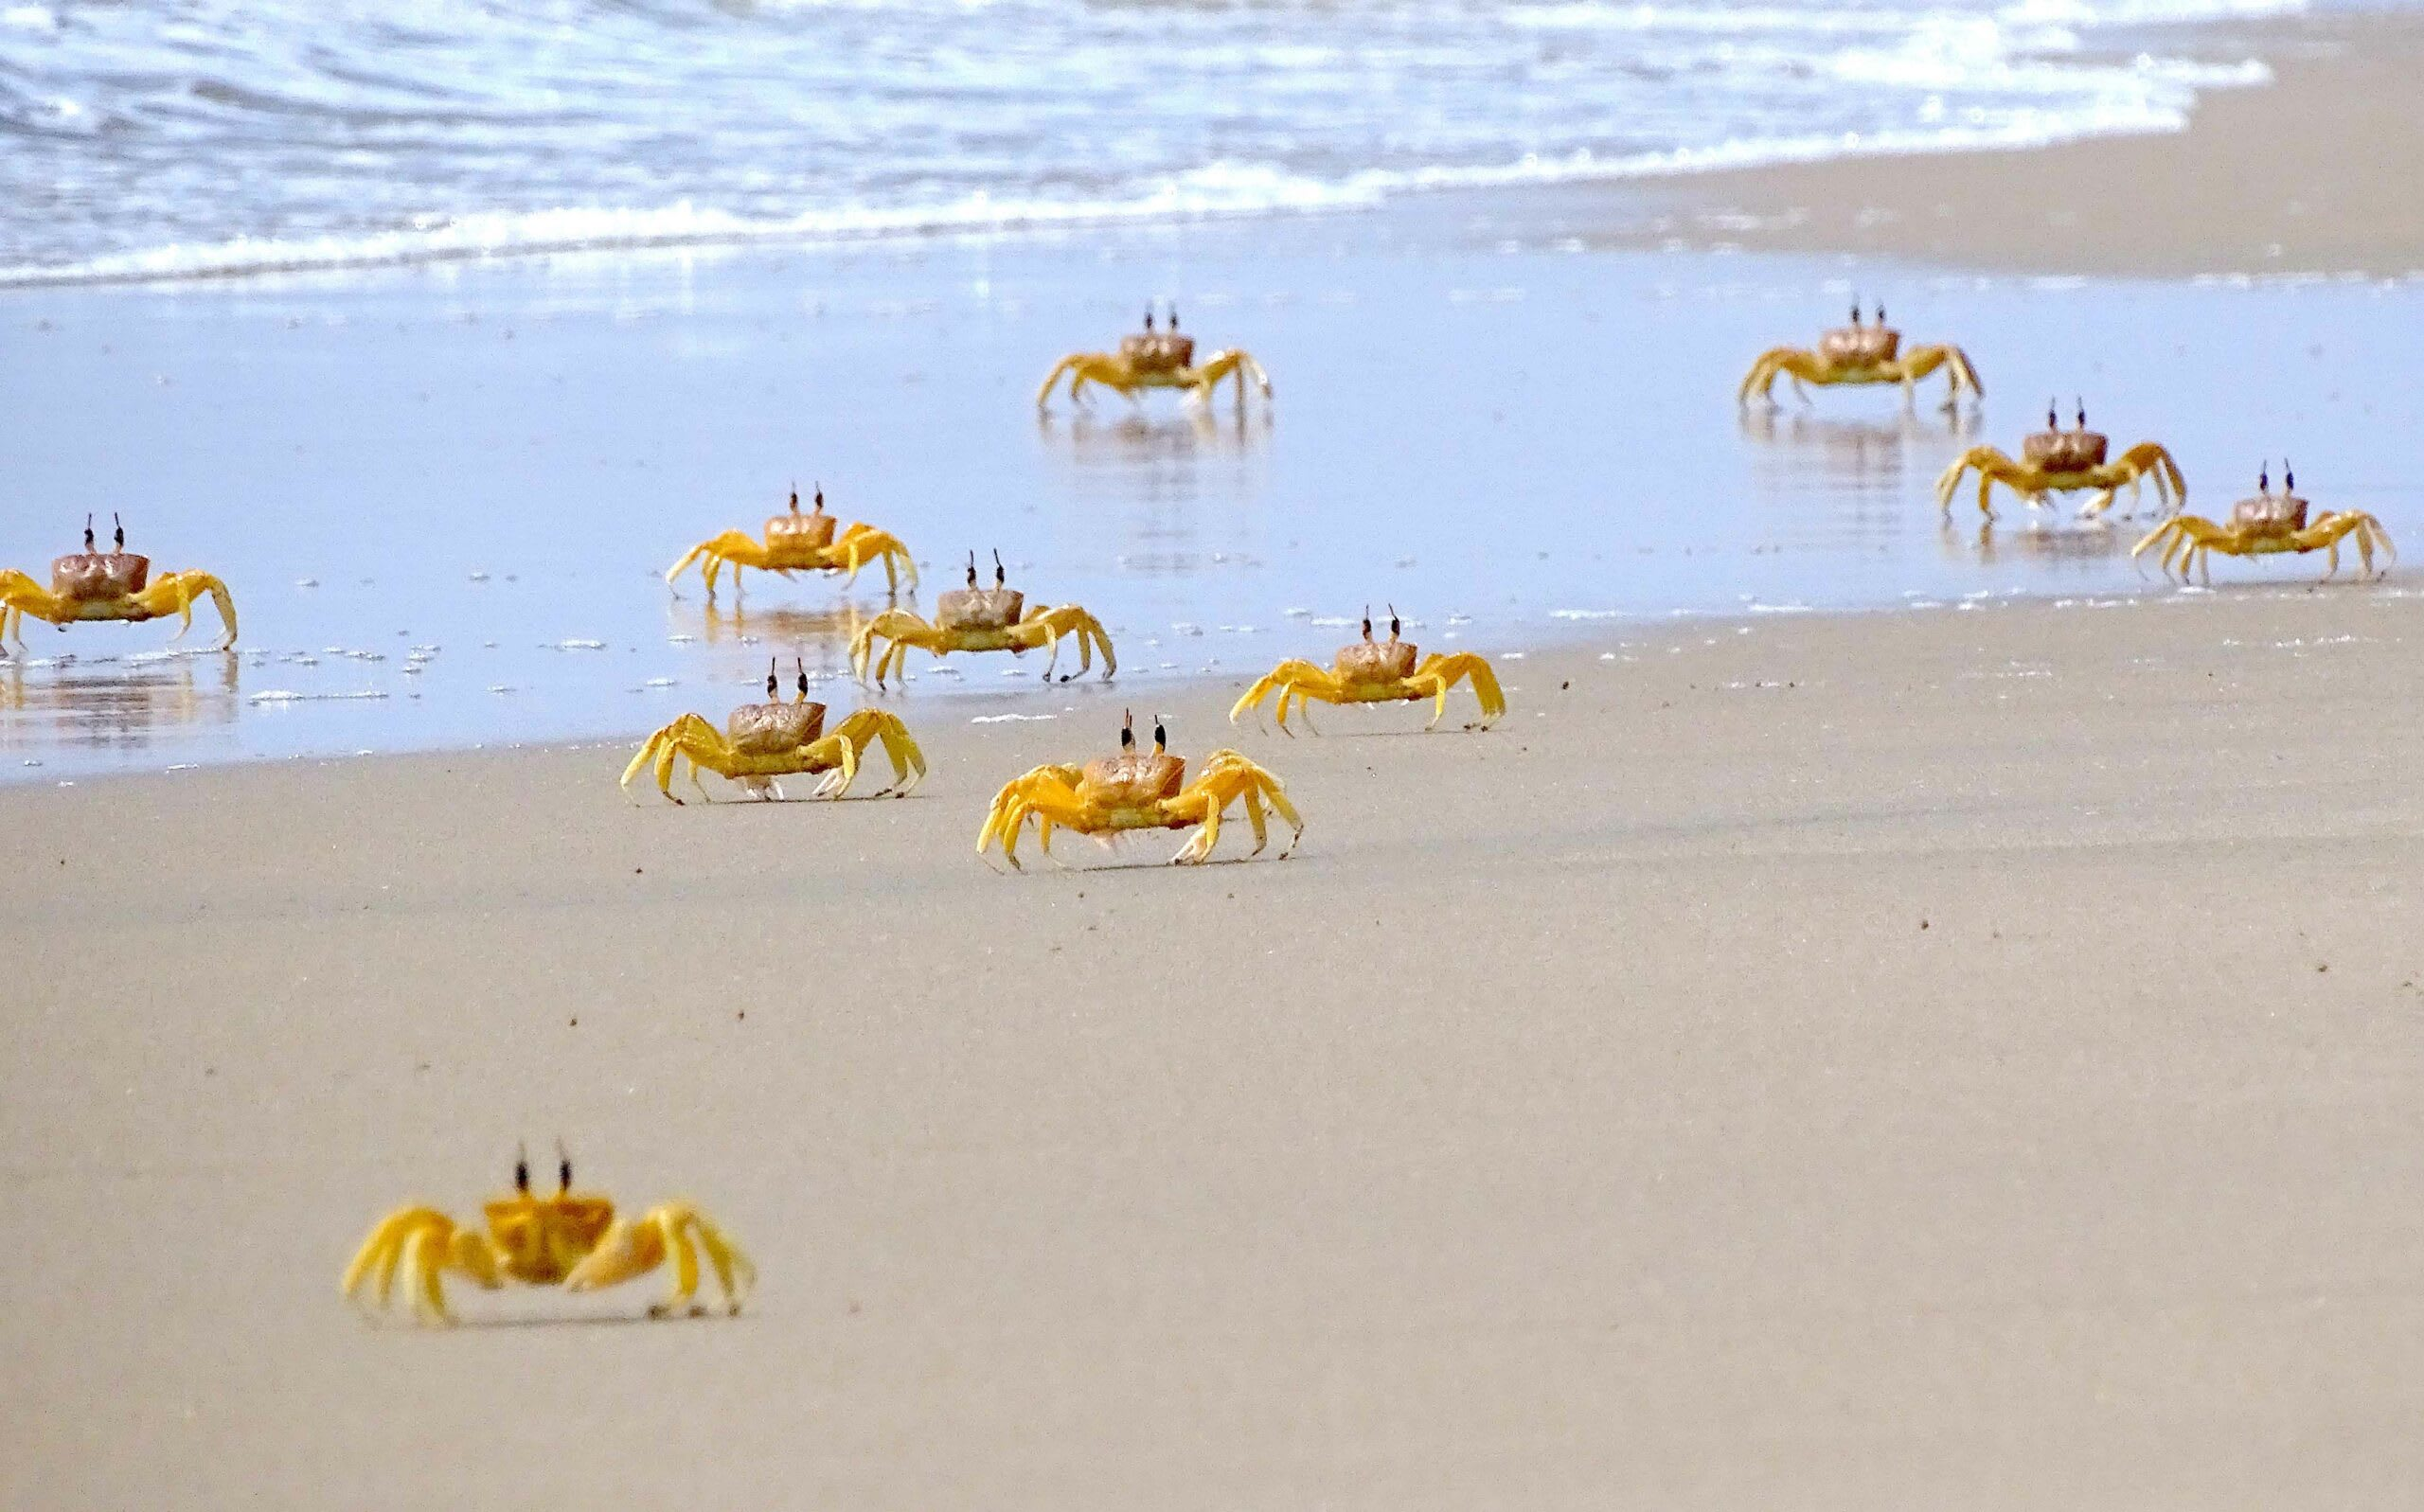 Ghost crabs, such as these on Elliot's Beach, Chennai, may be seen in abundance scuttling about on the shore, but each one builds a single burrow and lives alone in its carefully crafted shelter.   Cover Photo: The red ghost crab occupies the intertidal sandy shores and mudflats of tropical and sub-tropical coasts. Their elongated and cylindrical eyestalks give them periscopic 360-degree vision.